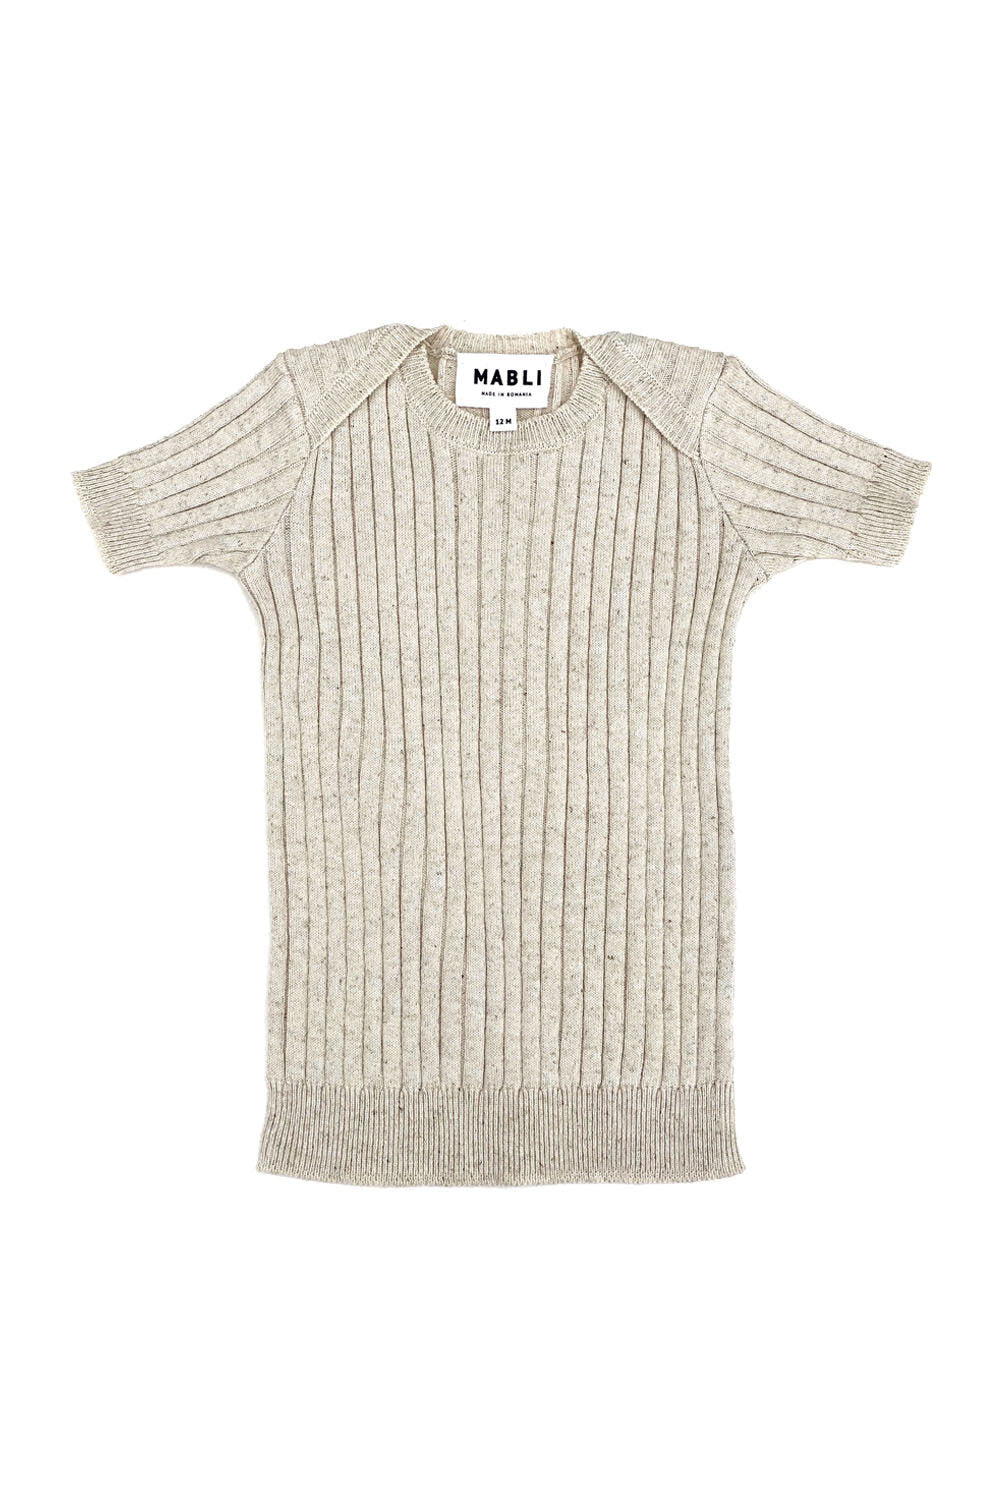 Mabli Caswell Knitted Cotton/Linen Short Sleeve Top - Sand - 12M,4Y